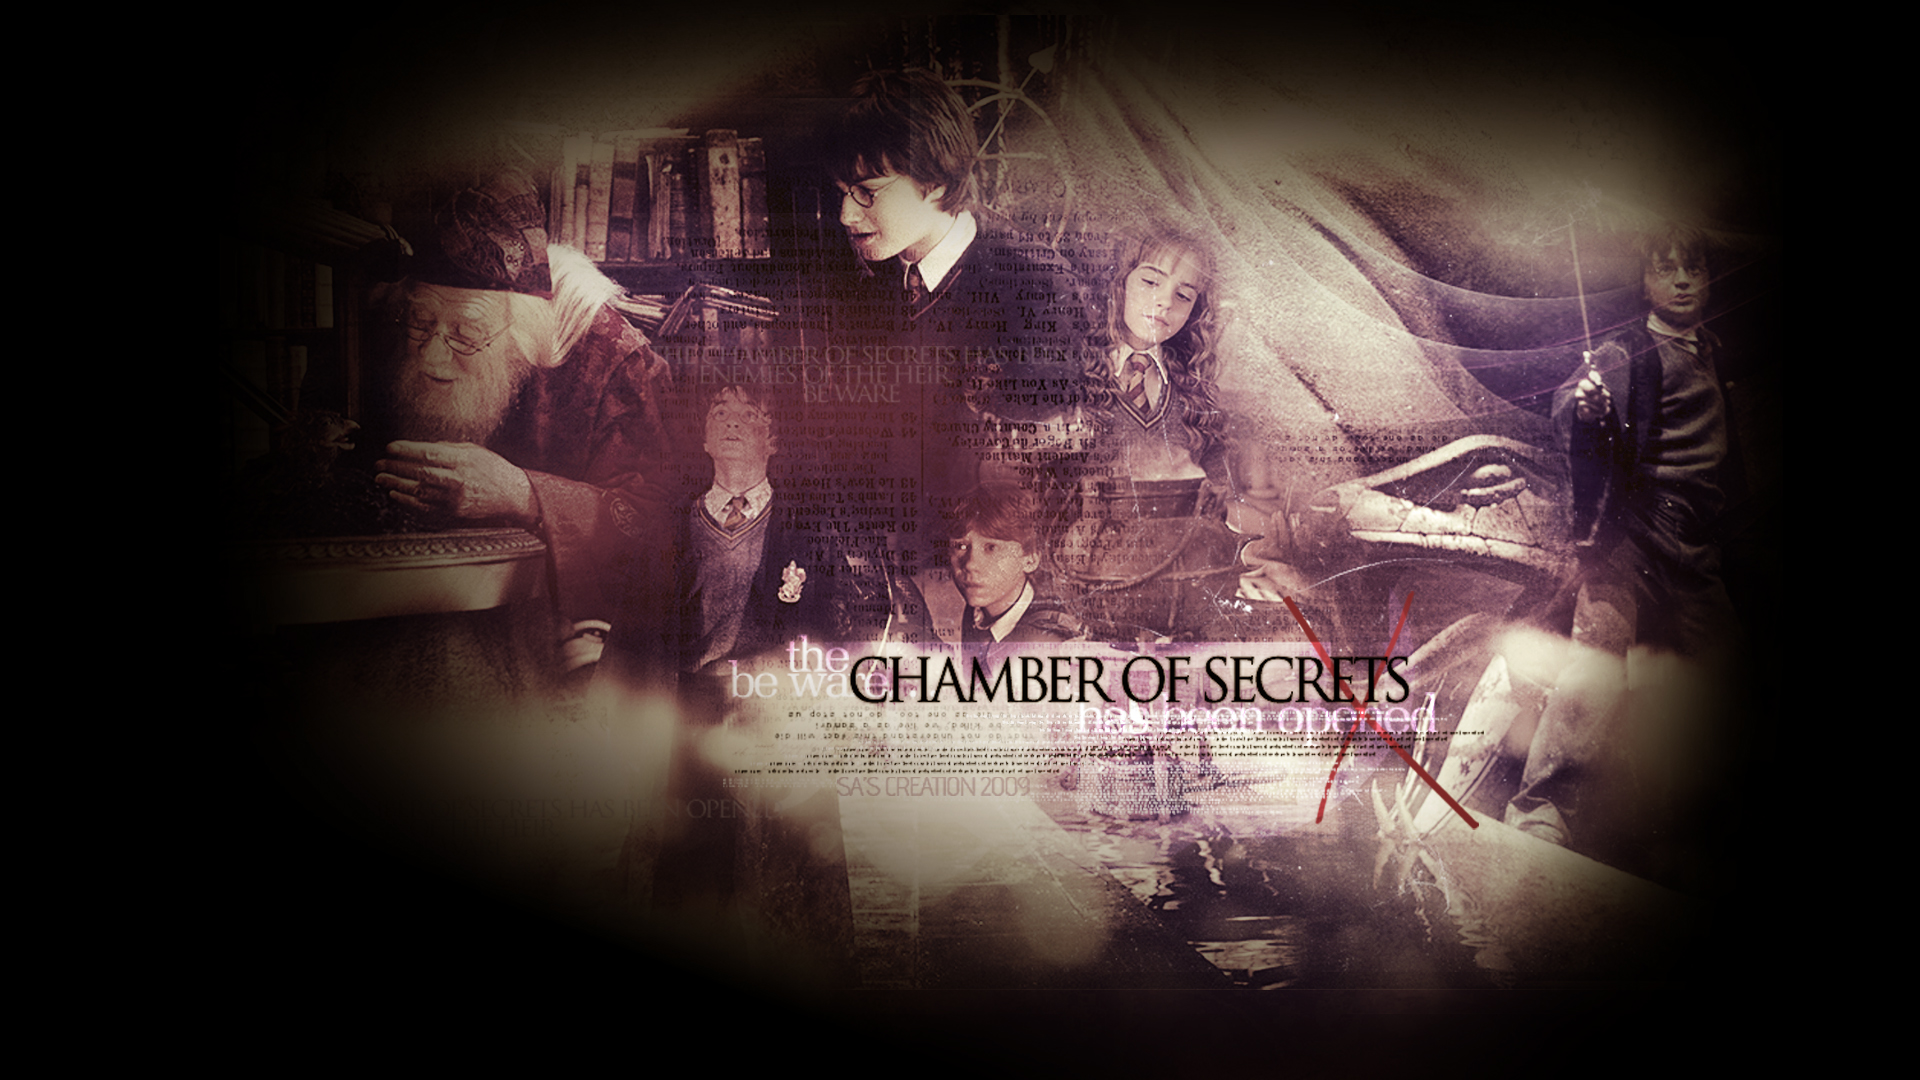 Harry Potter And The Chamber Of Secrets Wallpaper 1920x1080